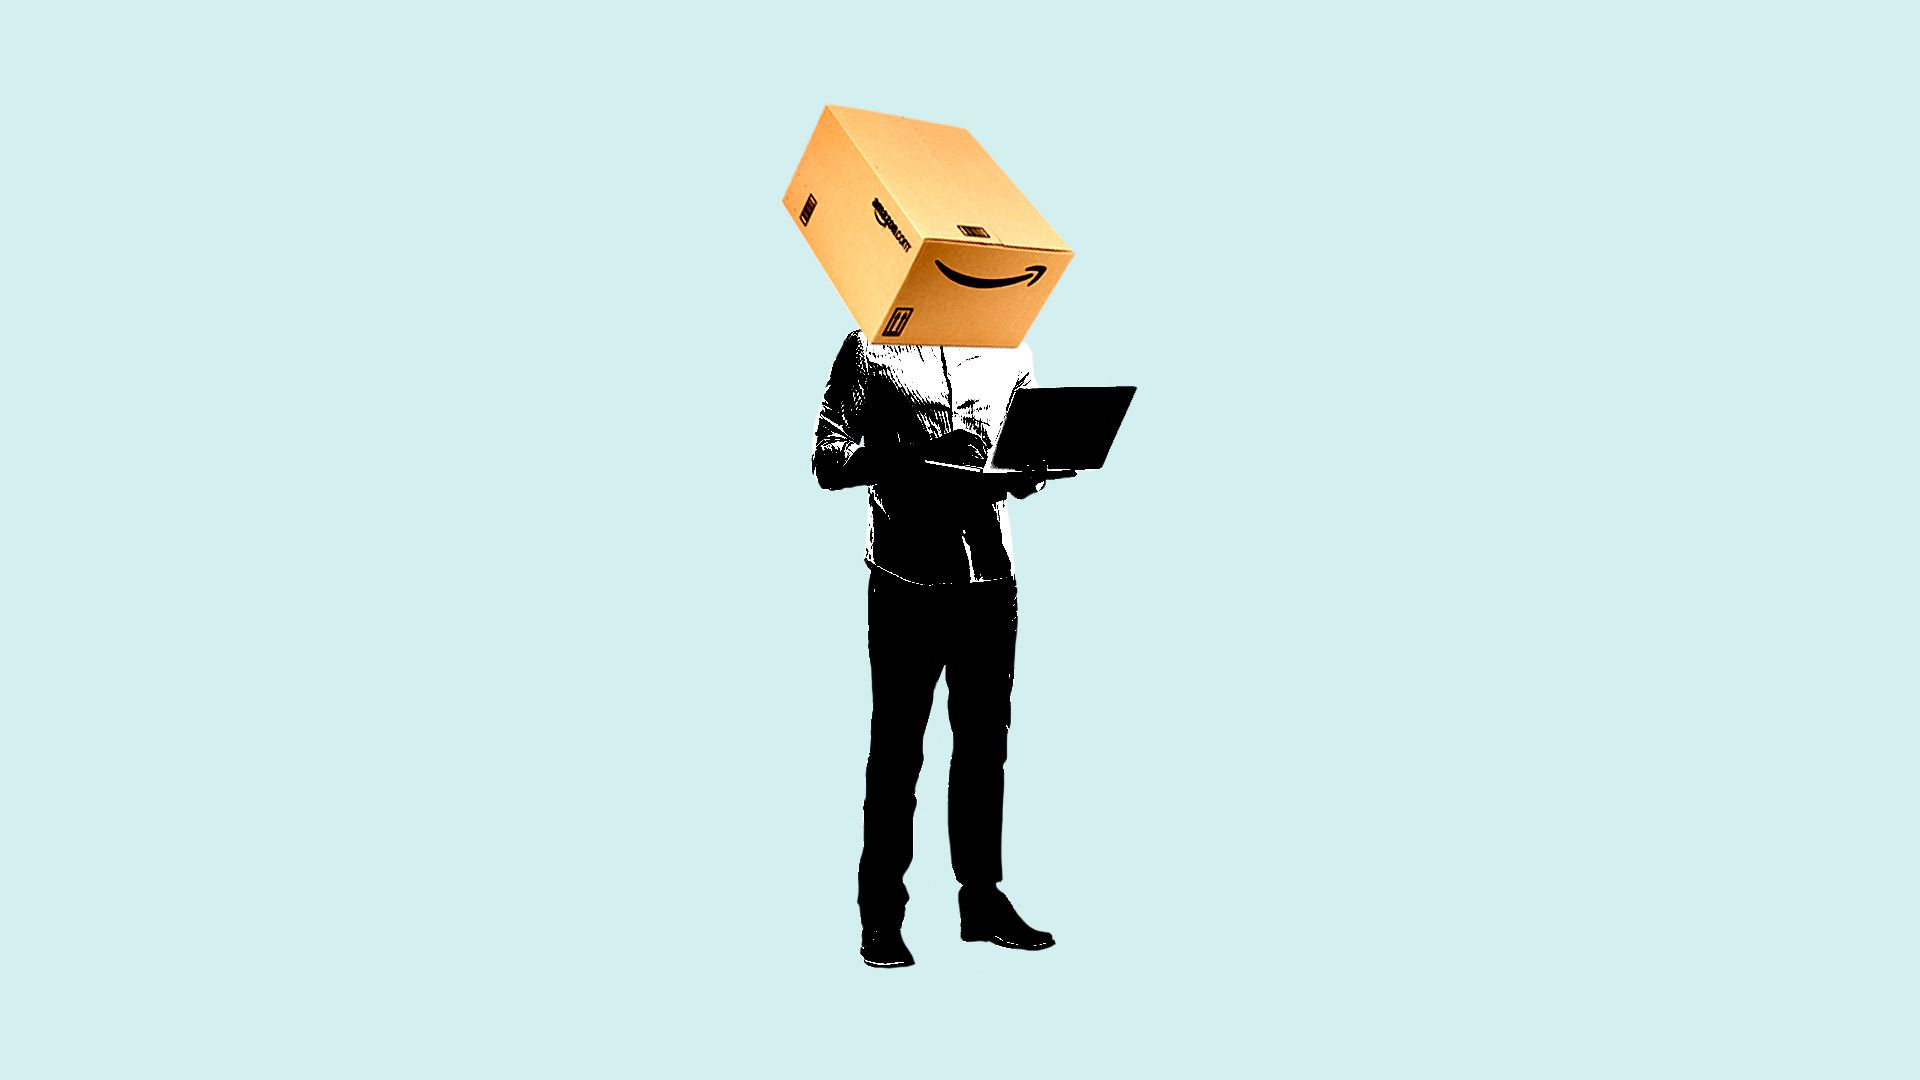 An illustration of a man with an Amazon box for a head working on a laptop.